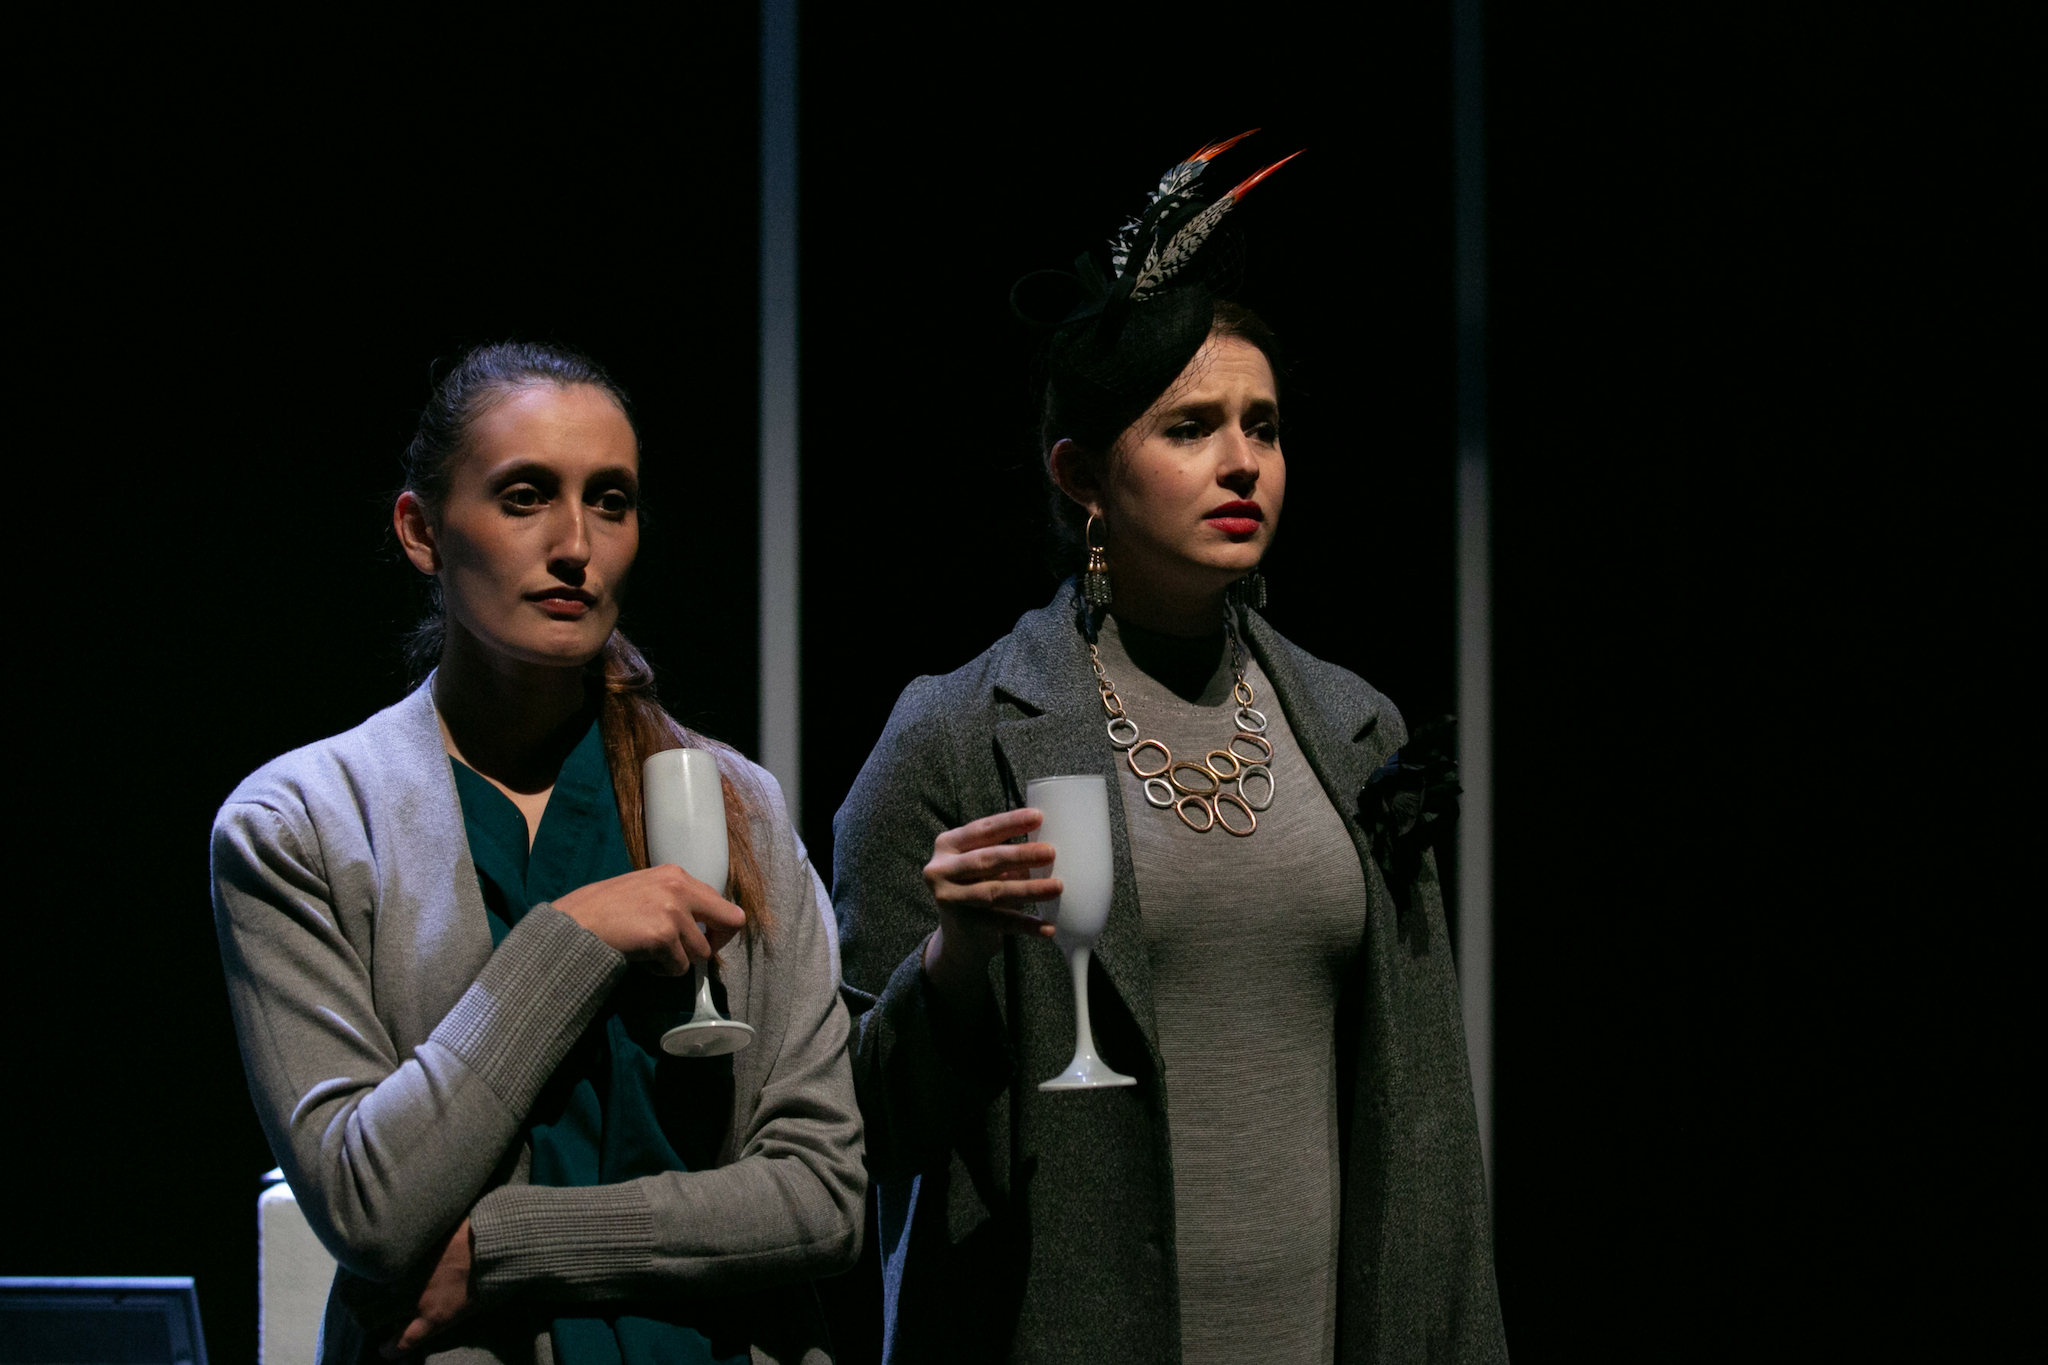 Siobhan Carroll and Sarah Mass in Here We Go, 2018-Photo by Evgenia Eliseeva